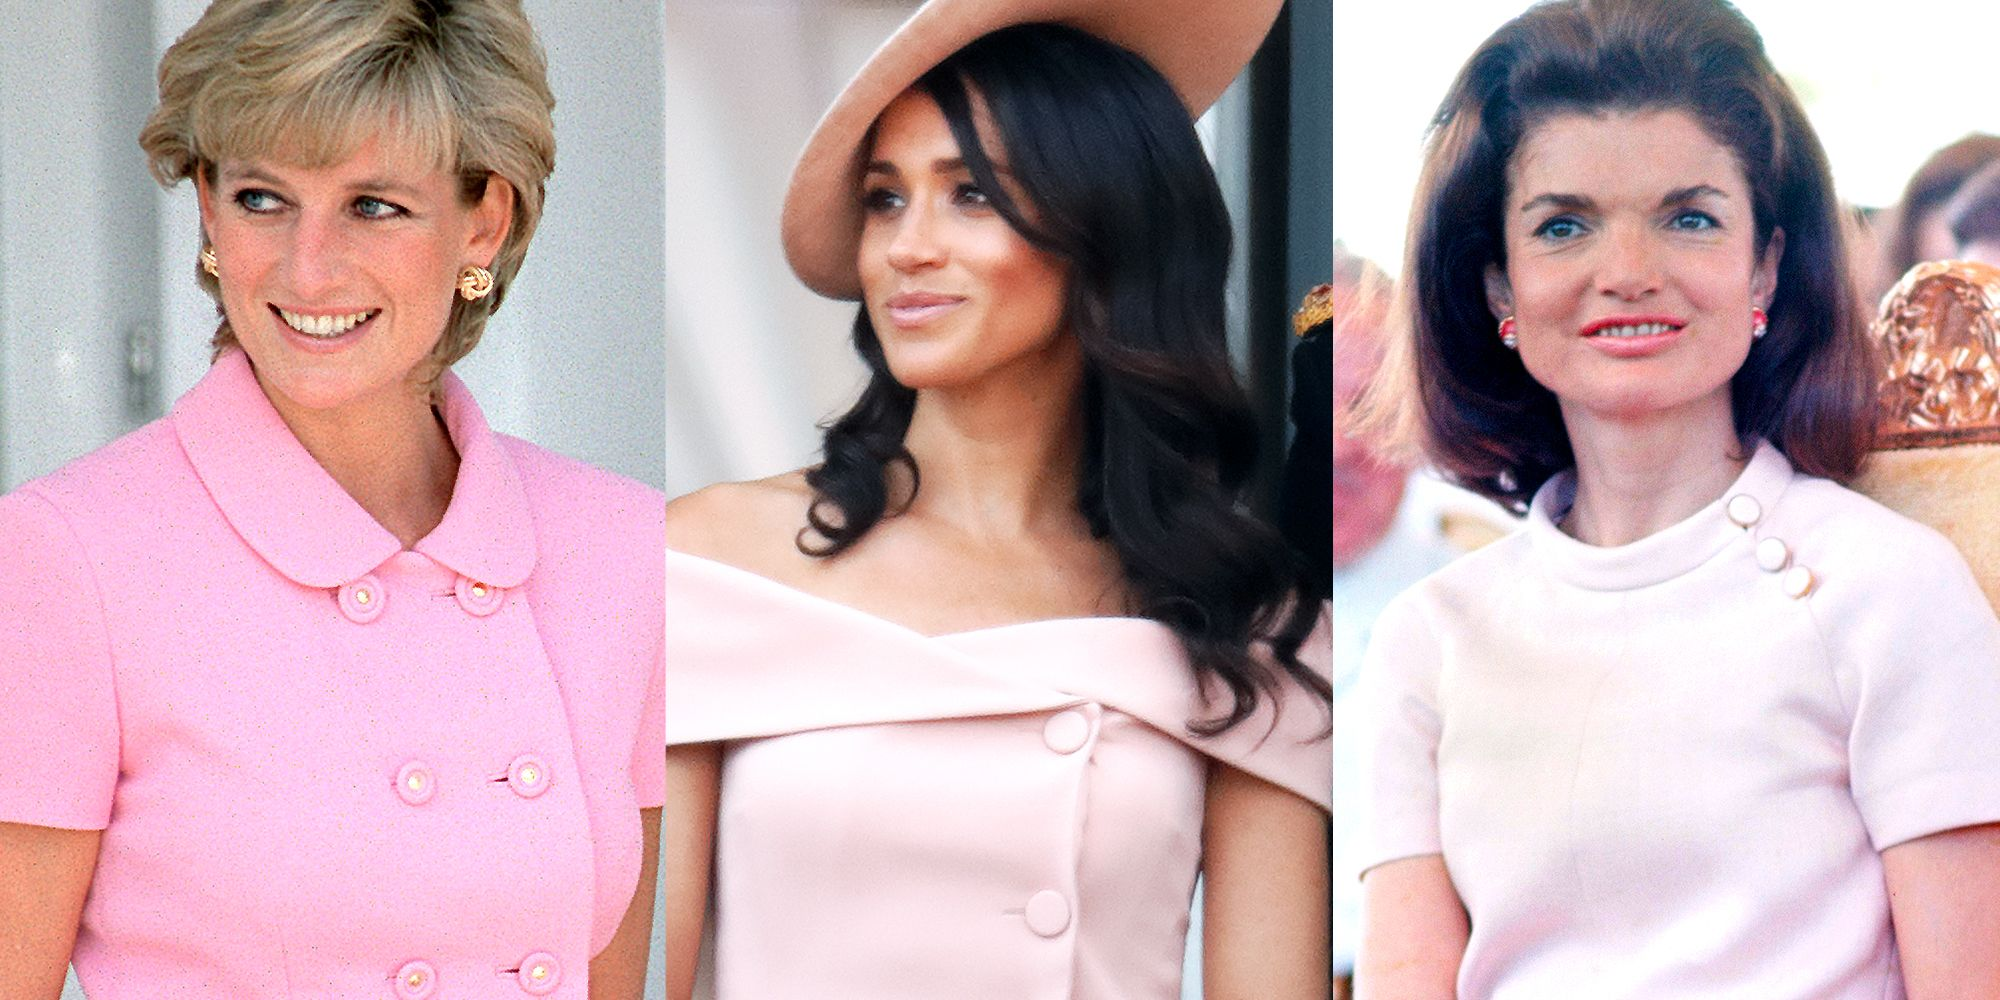 Their influence can clearly be seen in some of Meghan's looks as she defines her own style as a duchess.